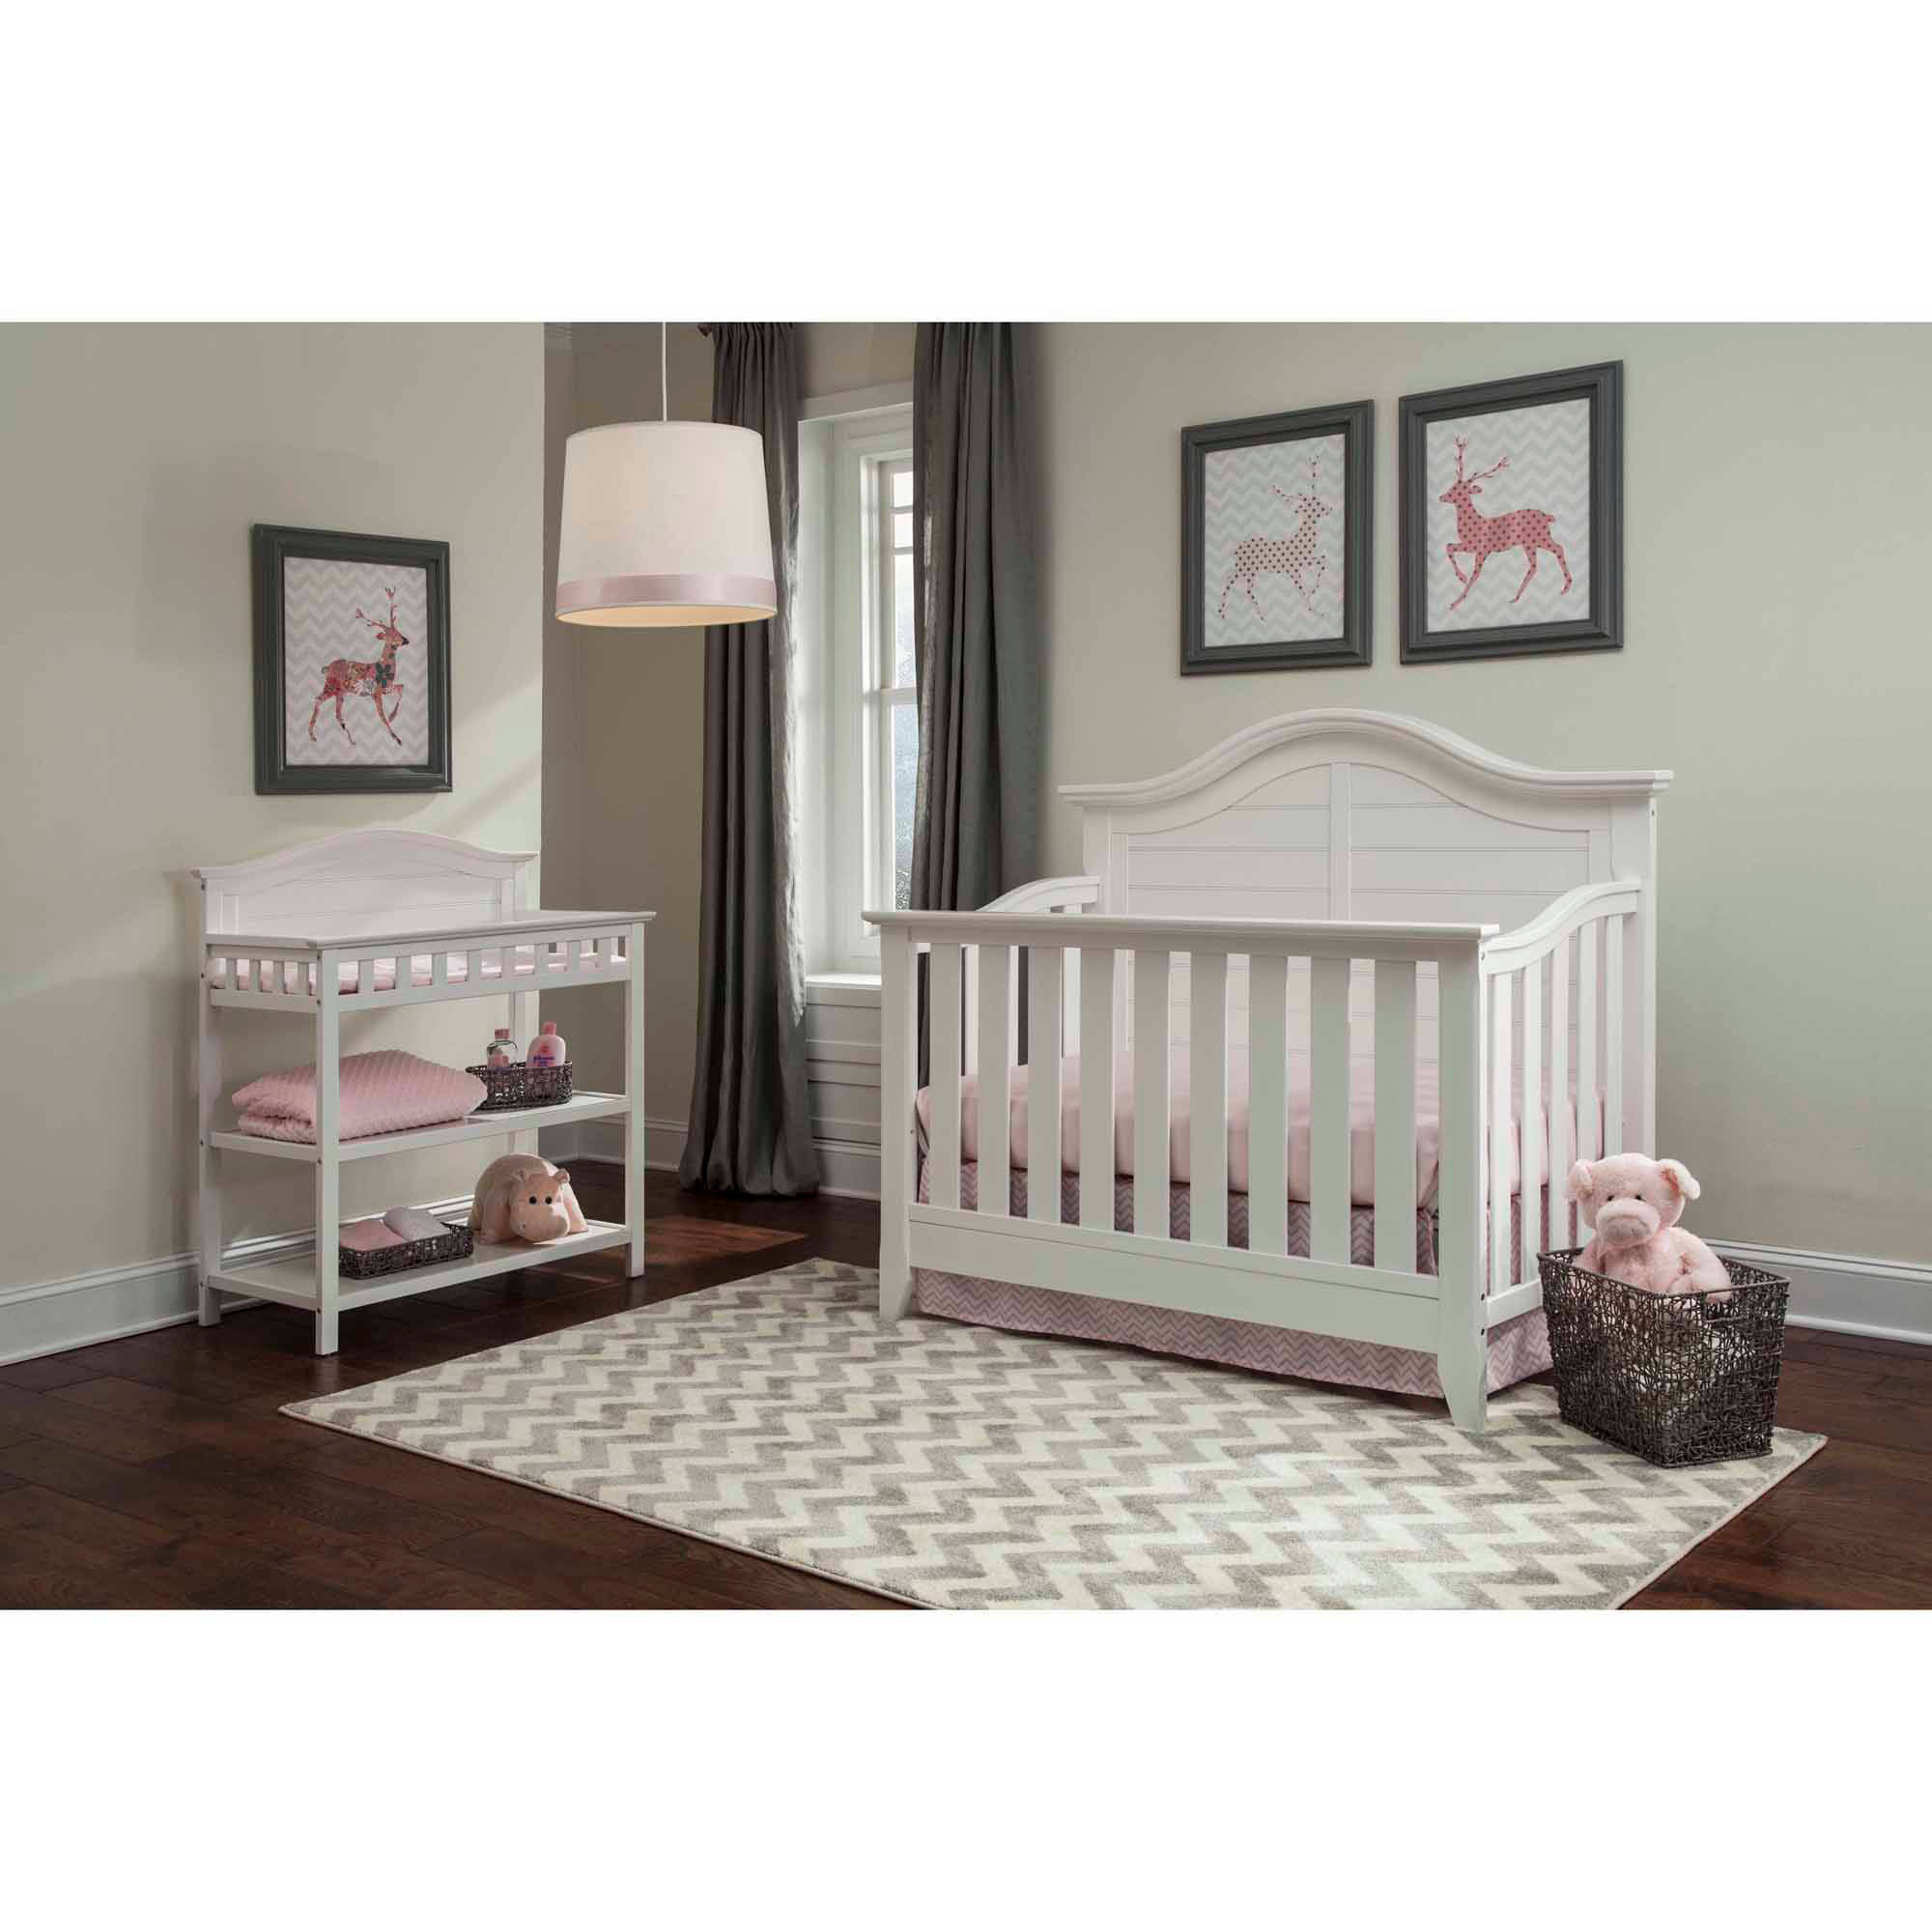 Thomasville Kids Southern Dunes Lifestyle 4 In 1 Convertible Crib White Com